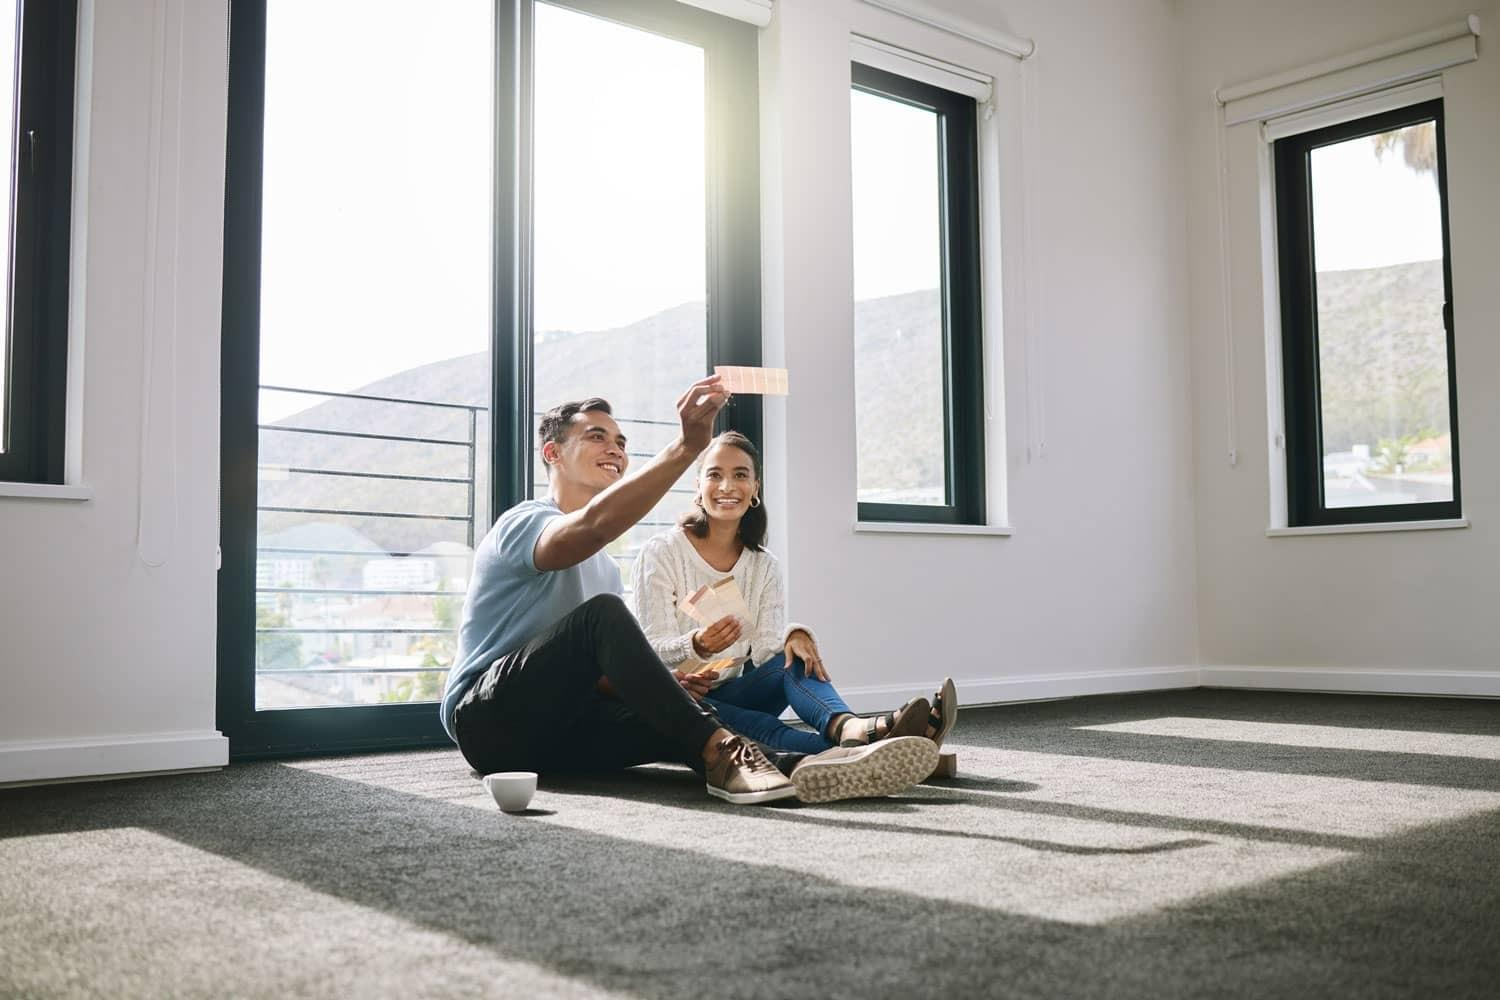 couple sitting on floor in empty room taking a picture in new home